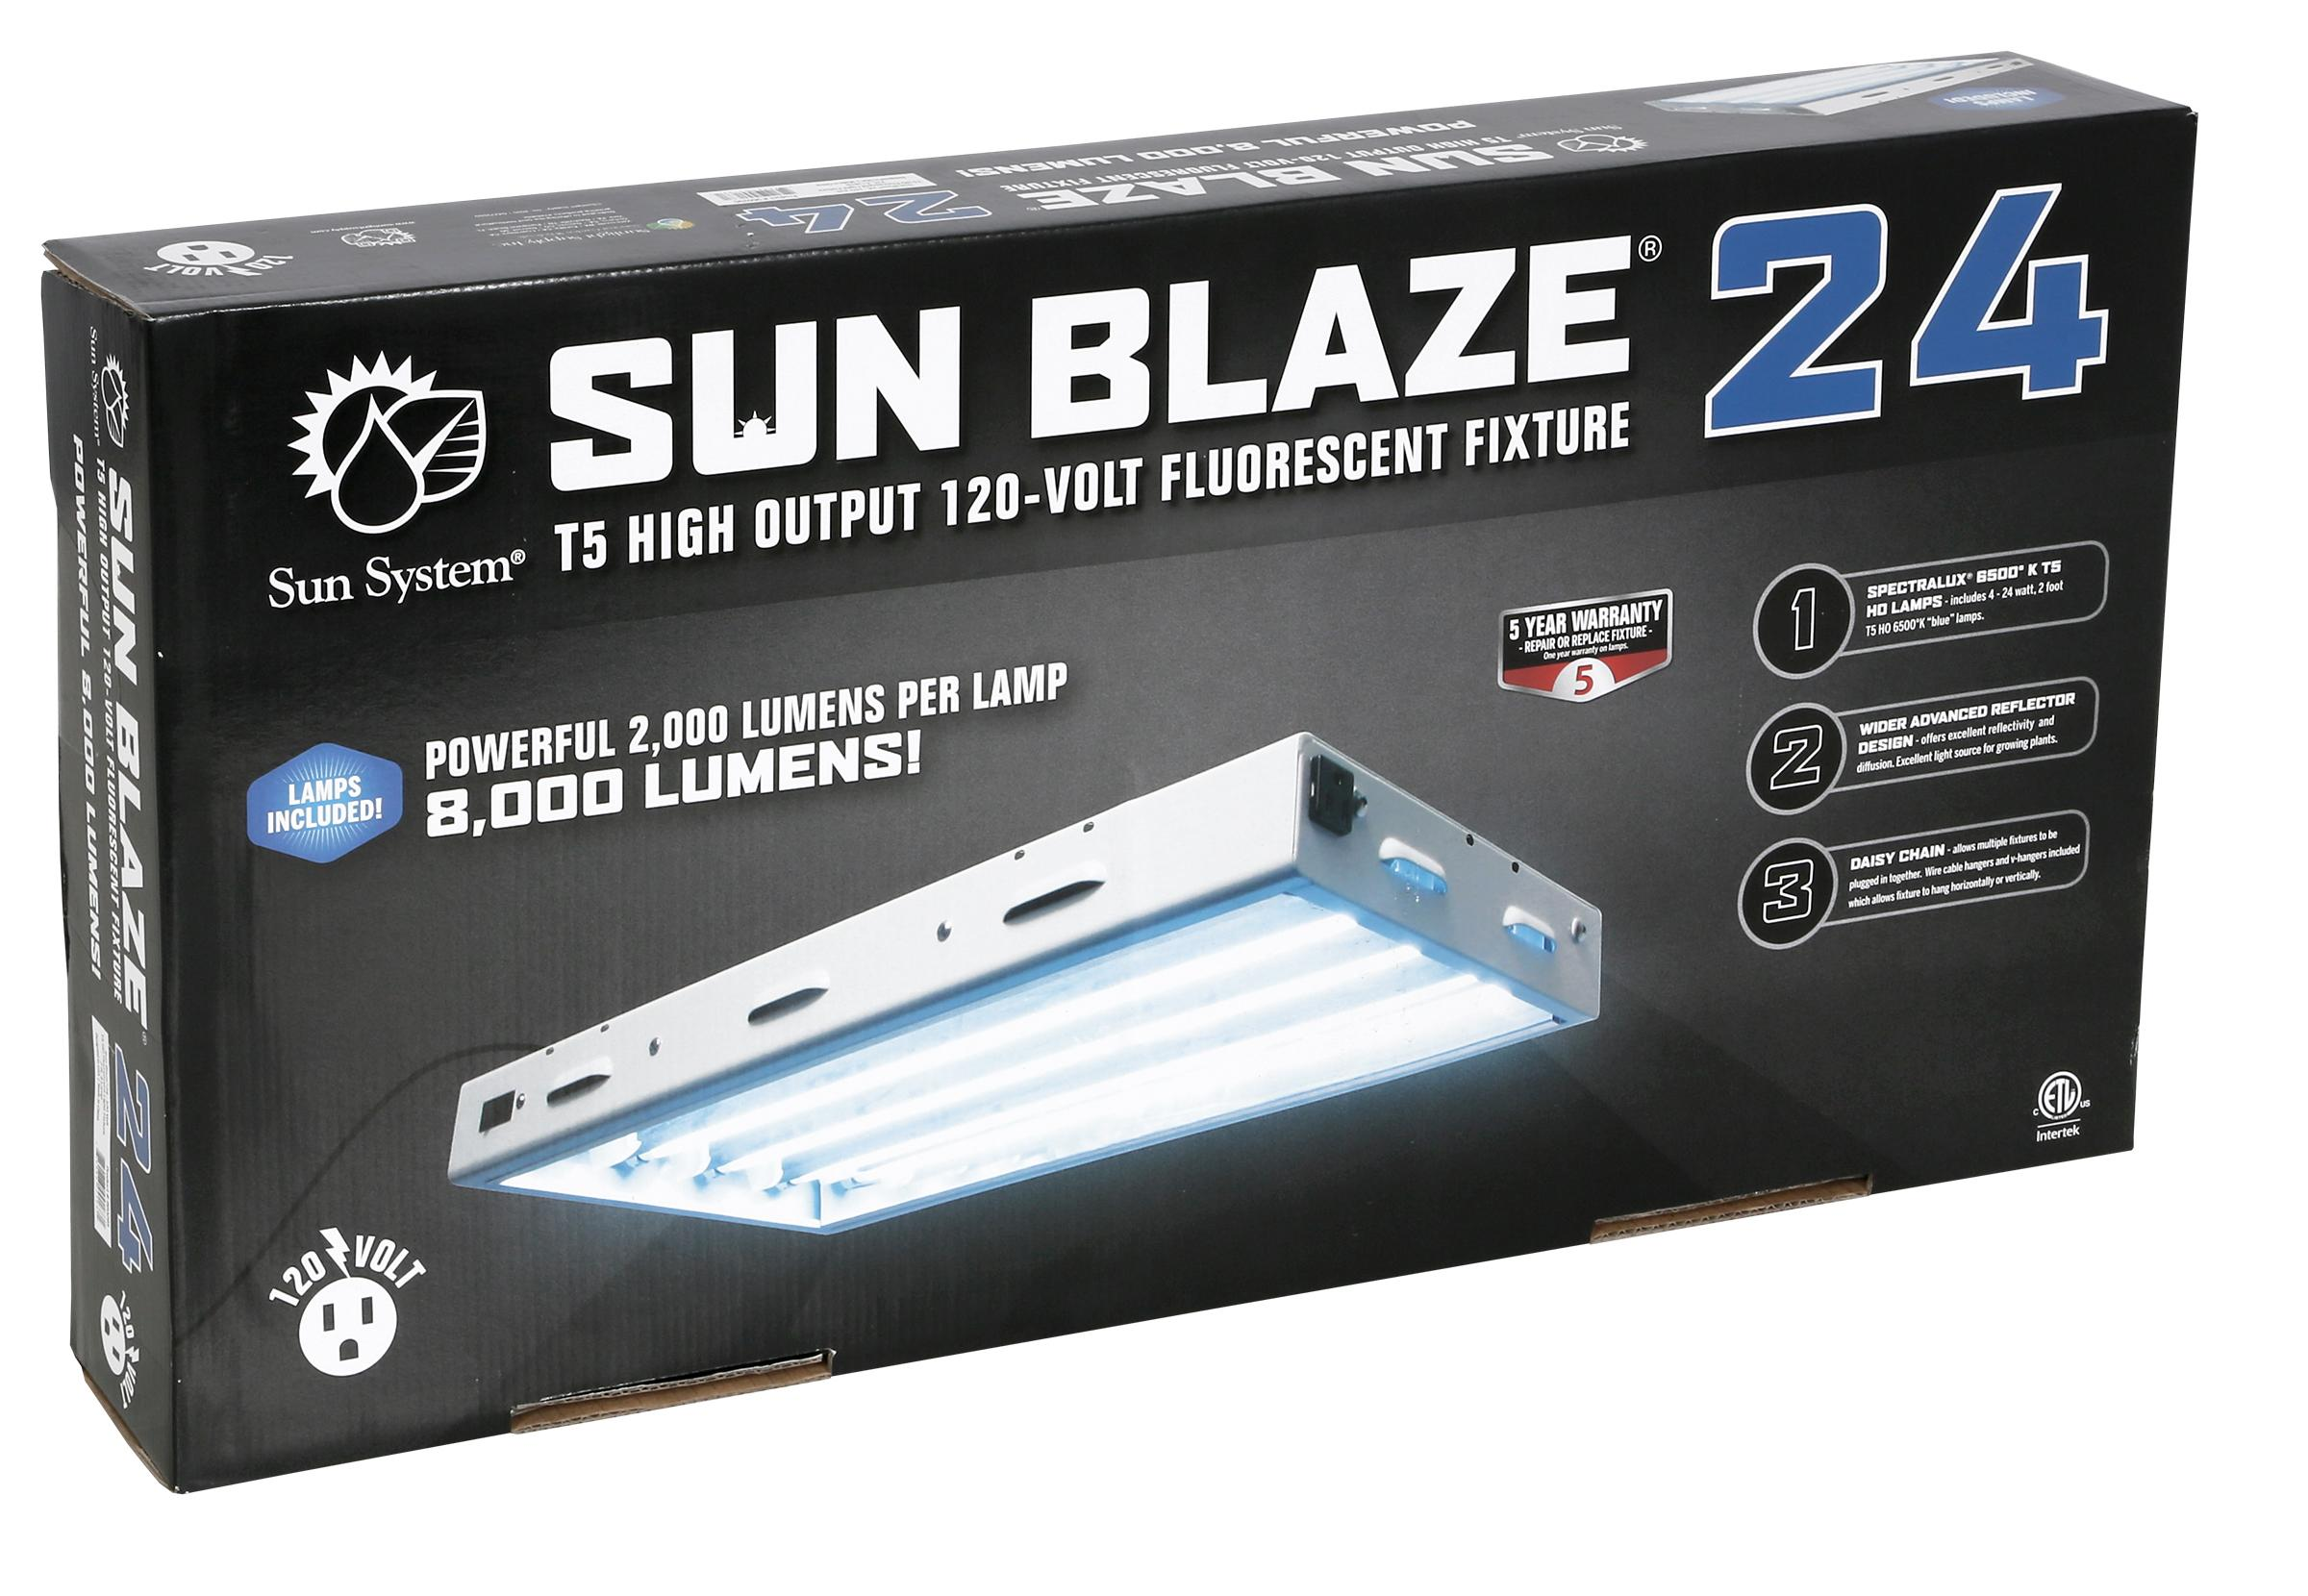 Sun Blaze 24 2 Foot 4 Lamp T5 Fluorescent System 120 Volt Tube Light On Fixtures Circuit Diagram Image